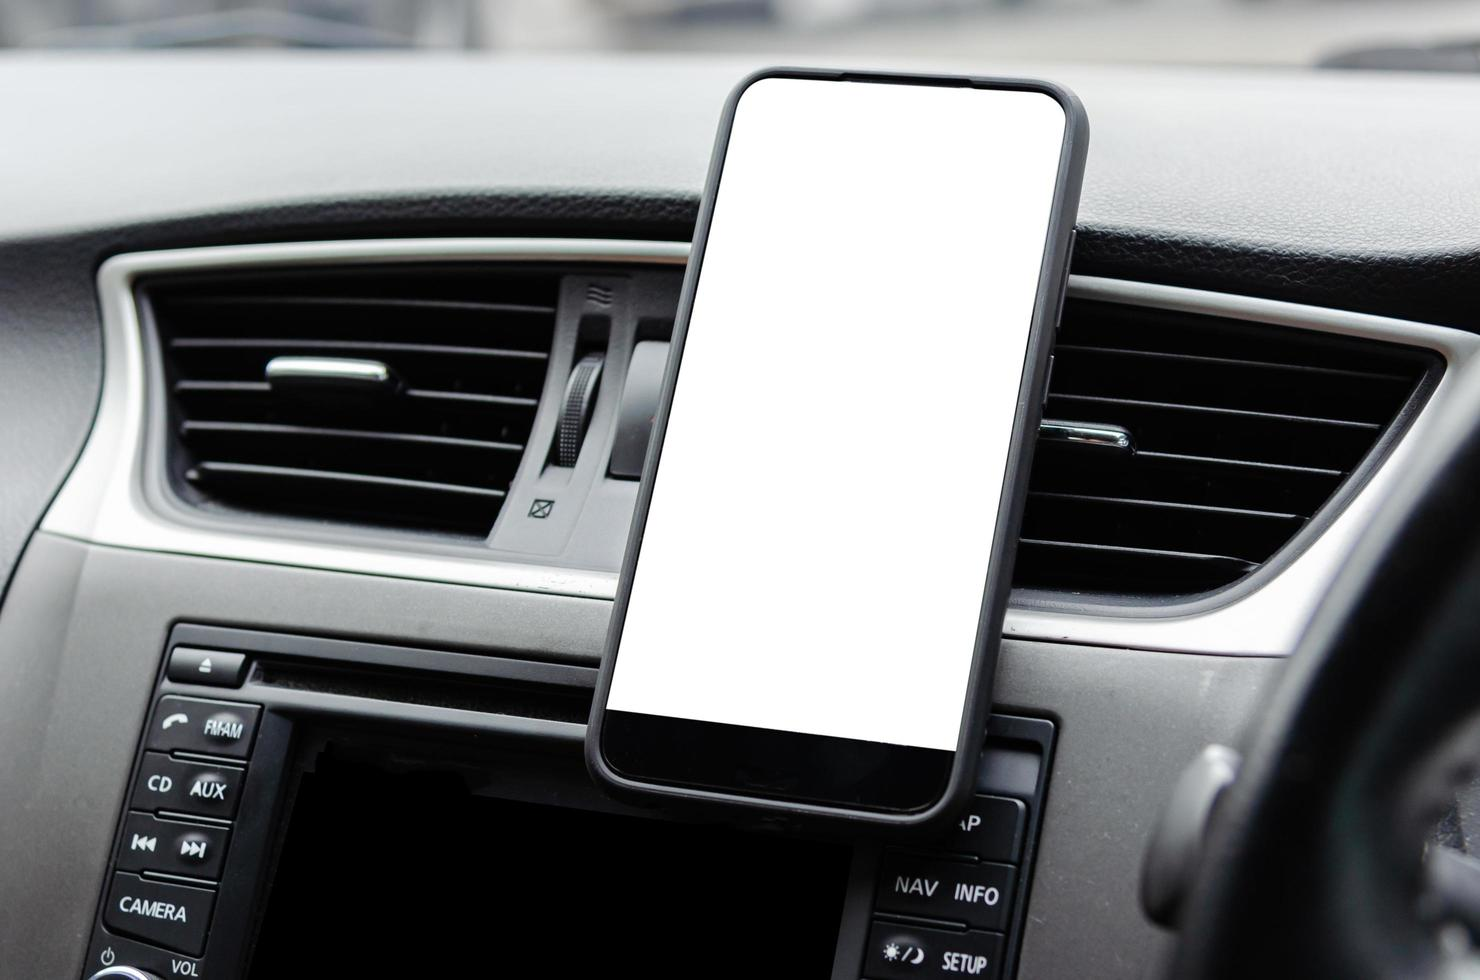 Mobile phone in car photo